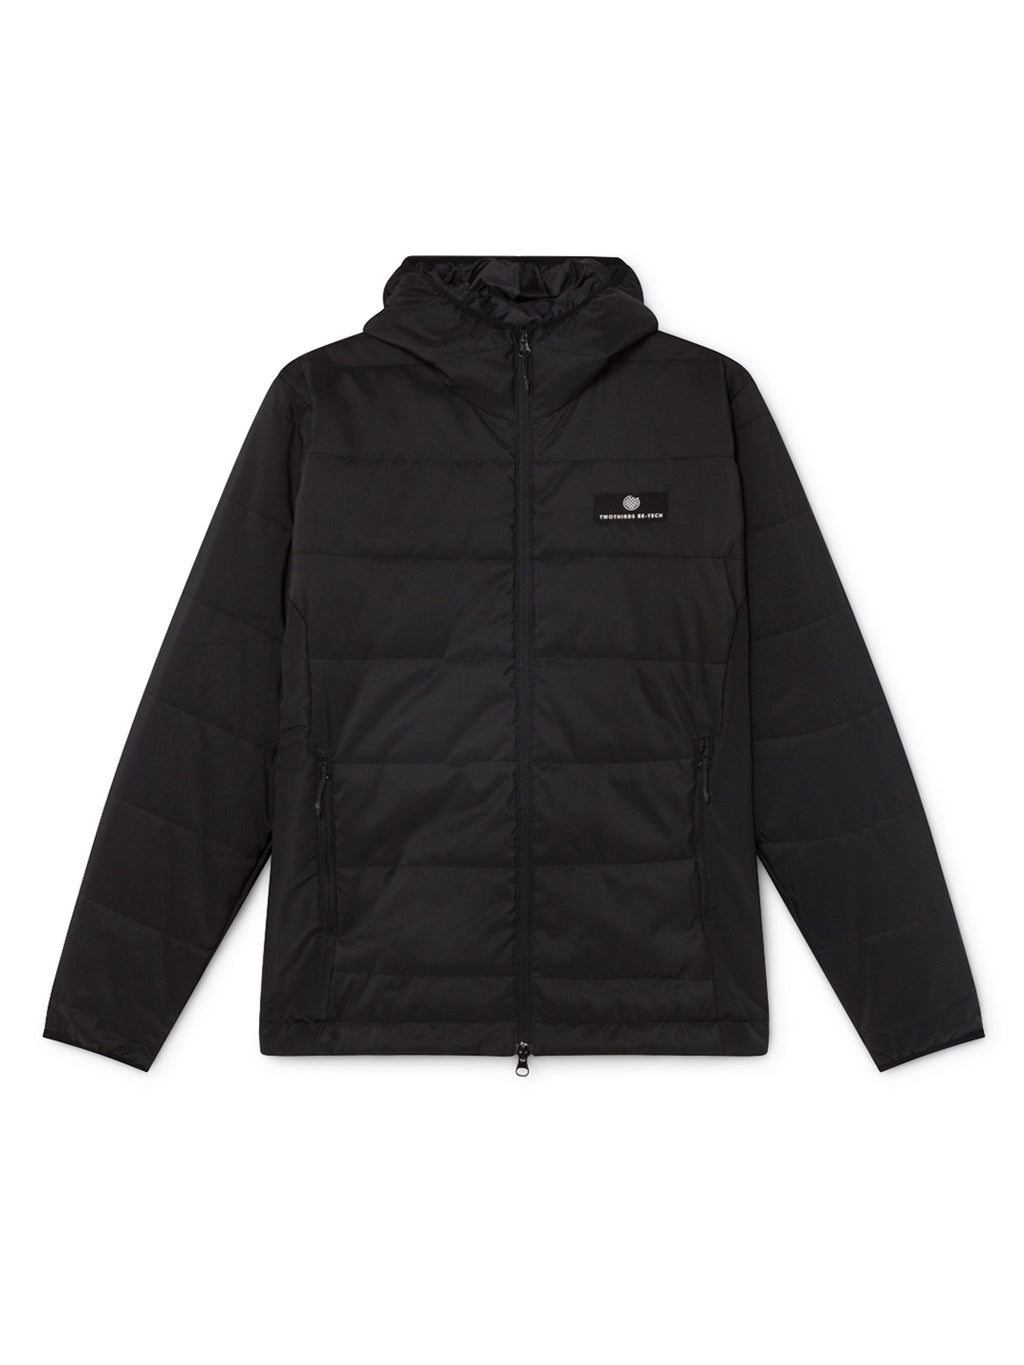 TWOTHIRDS Mens Jacket: Tabarca Men - Black front